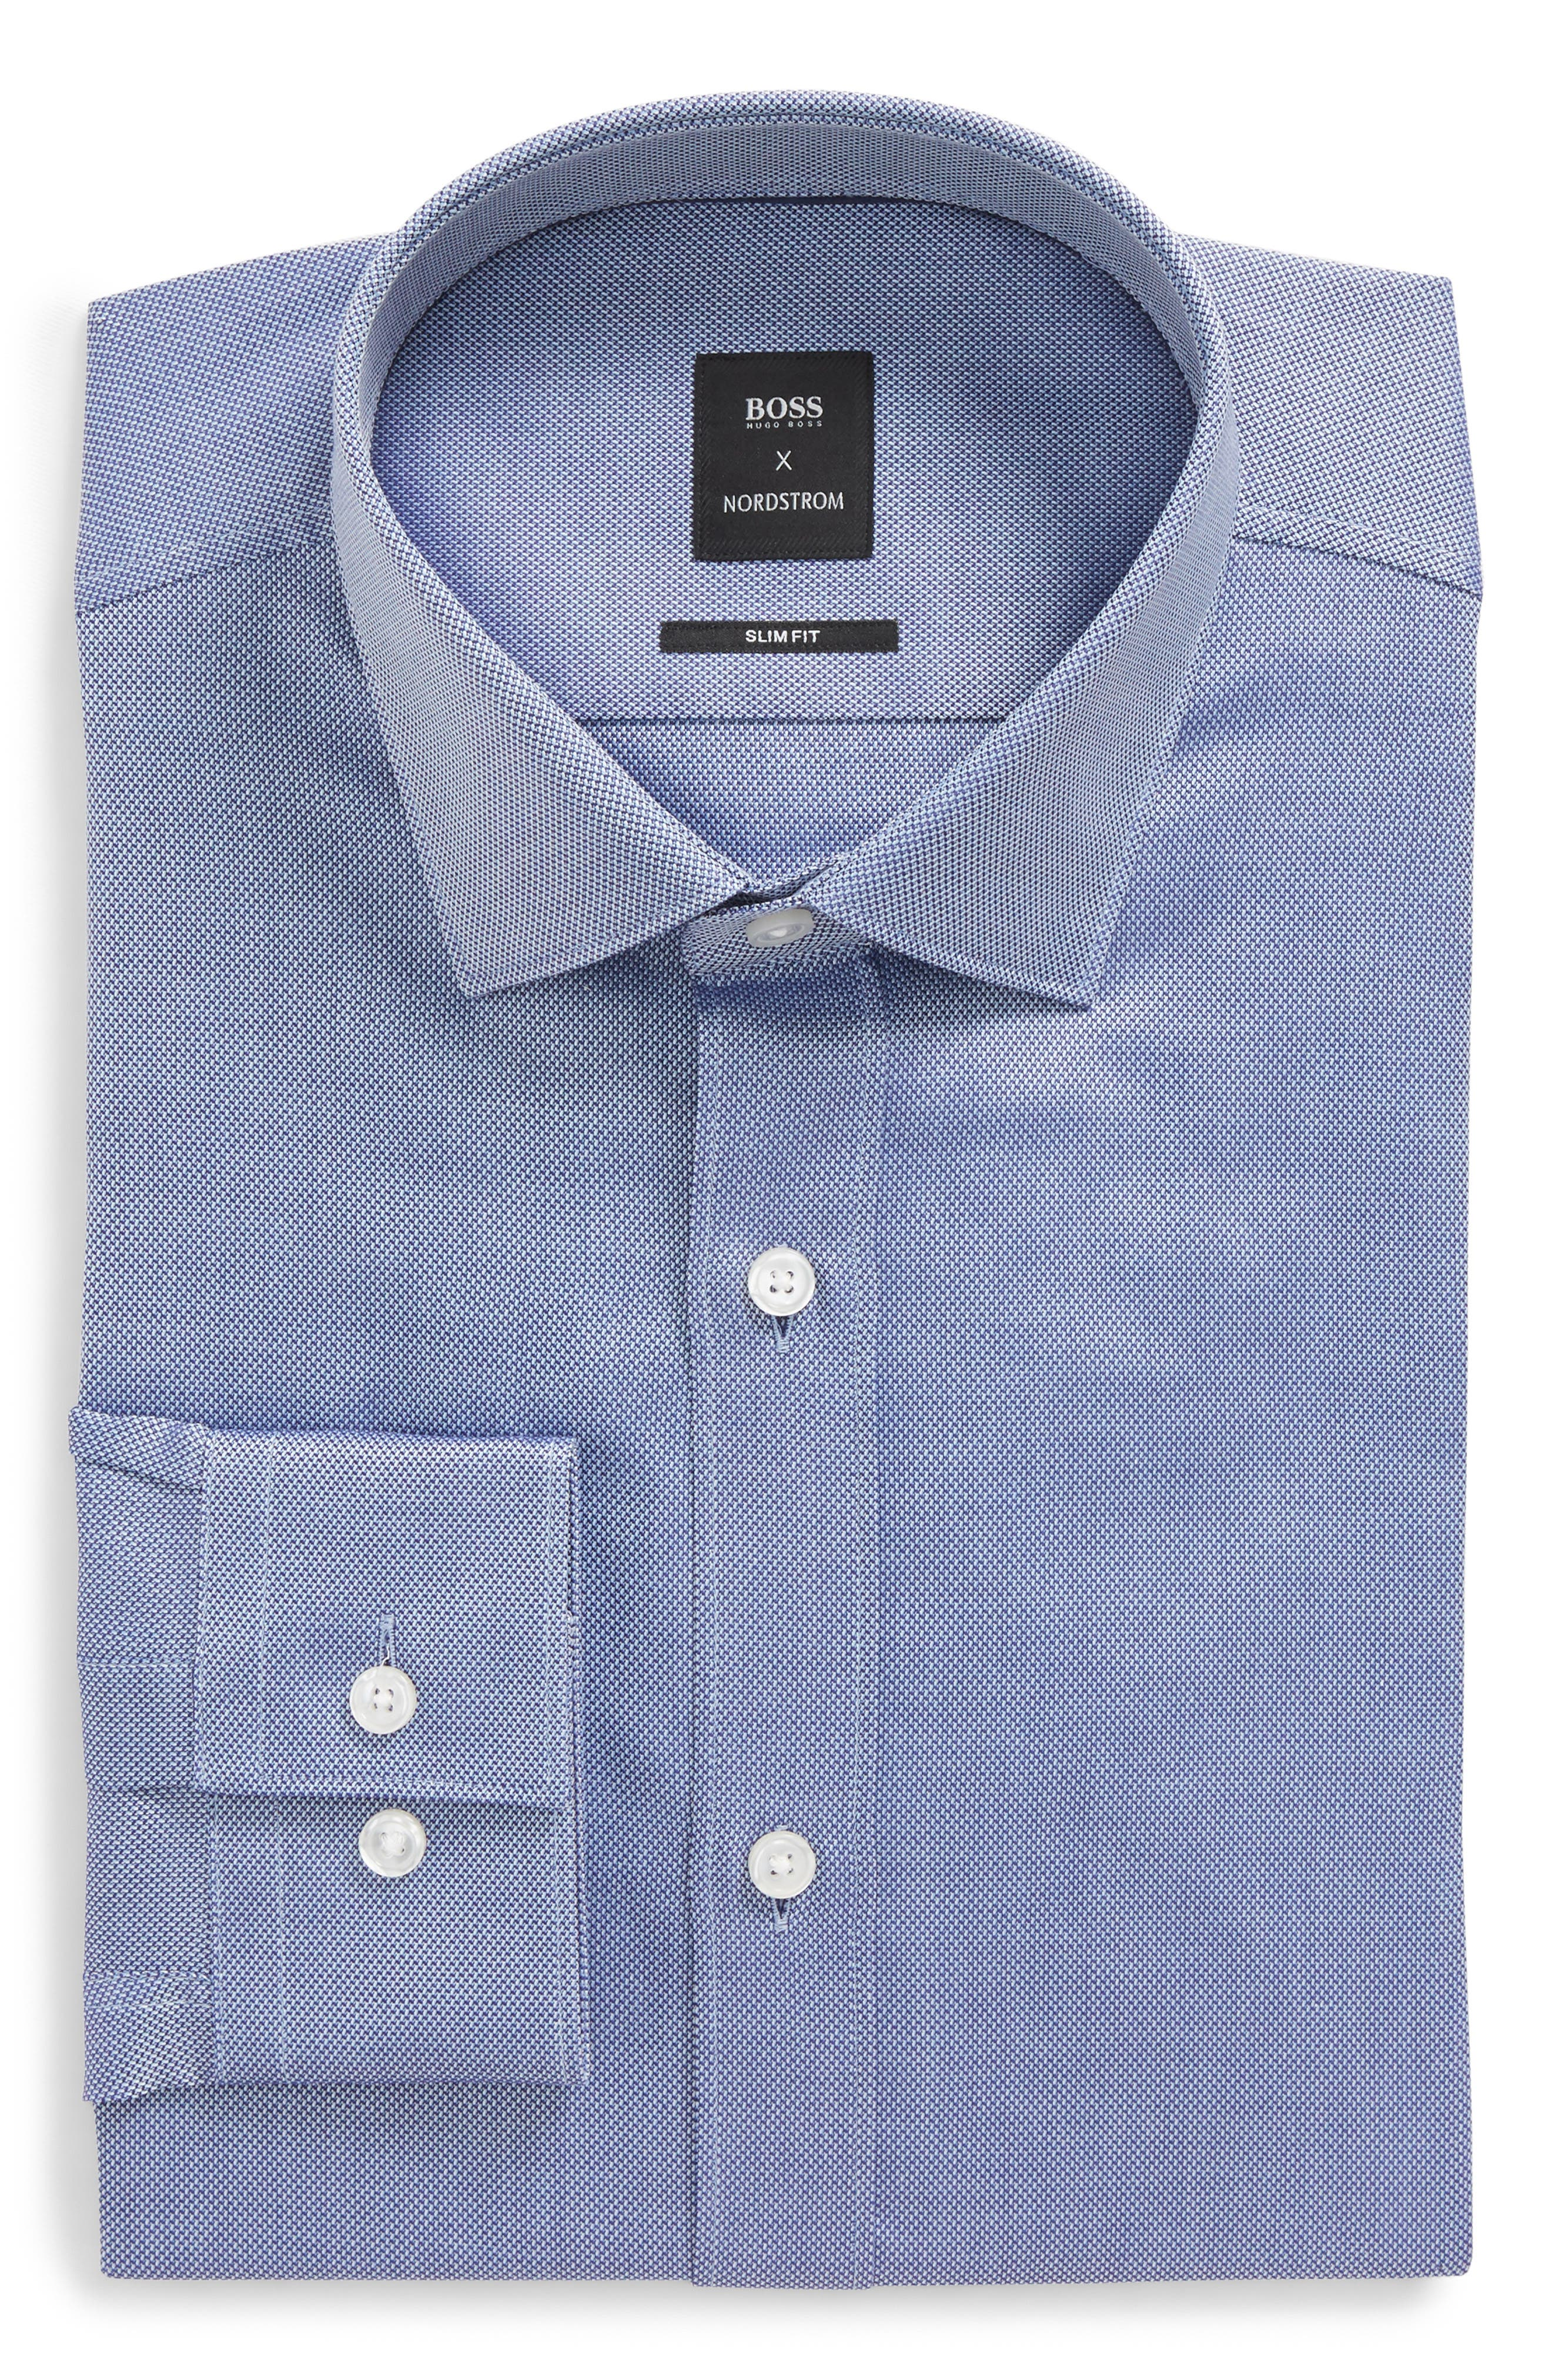 Nordstrom x BOSS Isaak Slim Fit Solid Dress Shirt,                         Main,                         color, 420